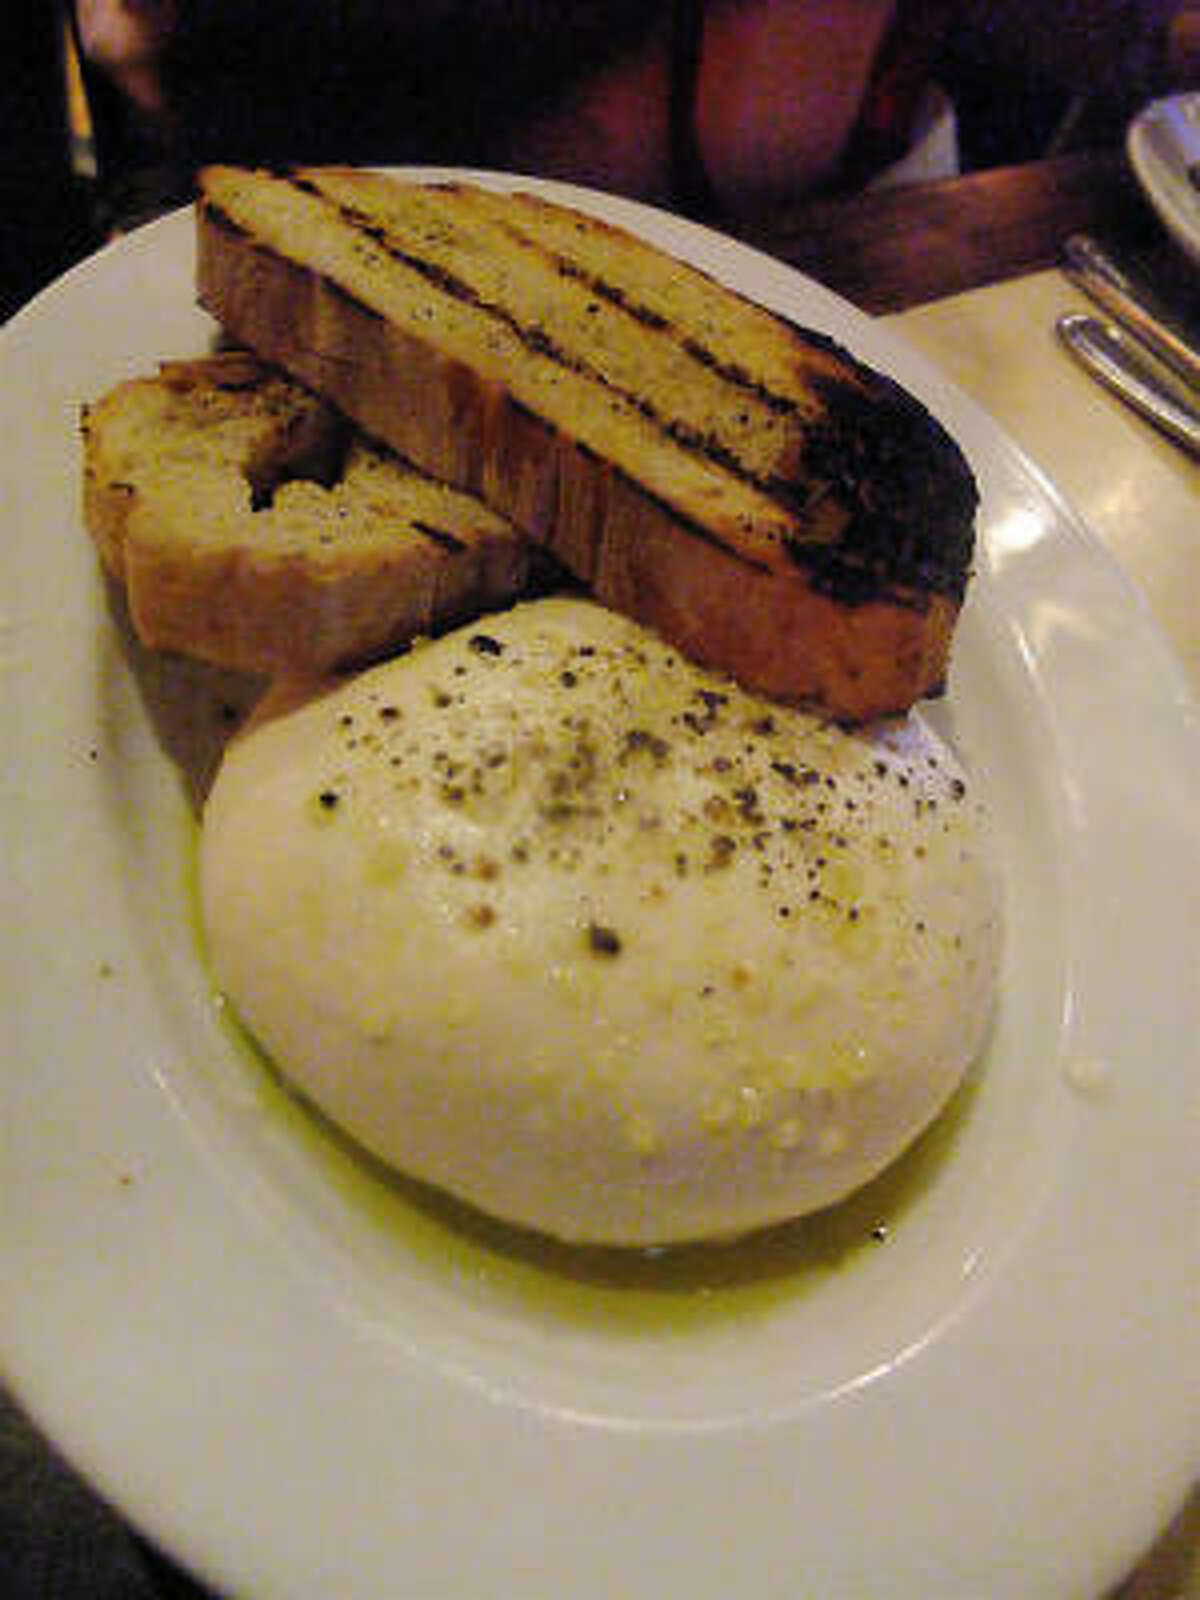 Pulled to order mozzarella with sea salt & charred Pugliese bread, Tre Trattoria in San Antonio.